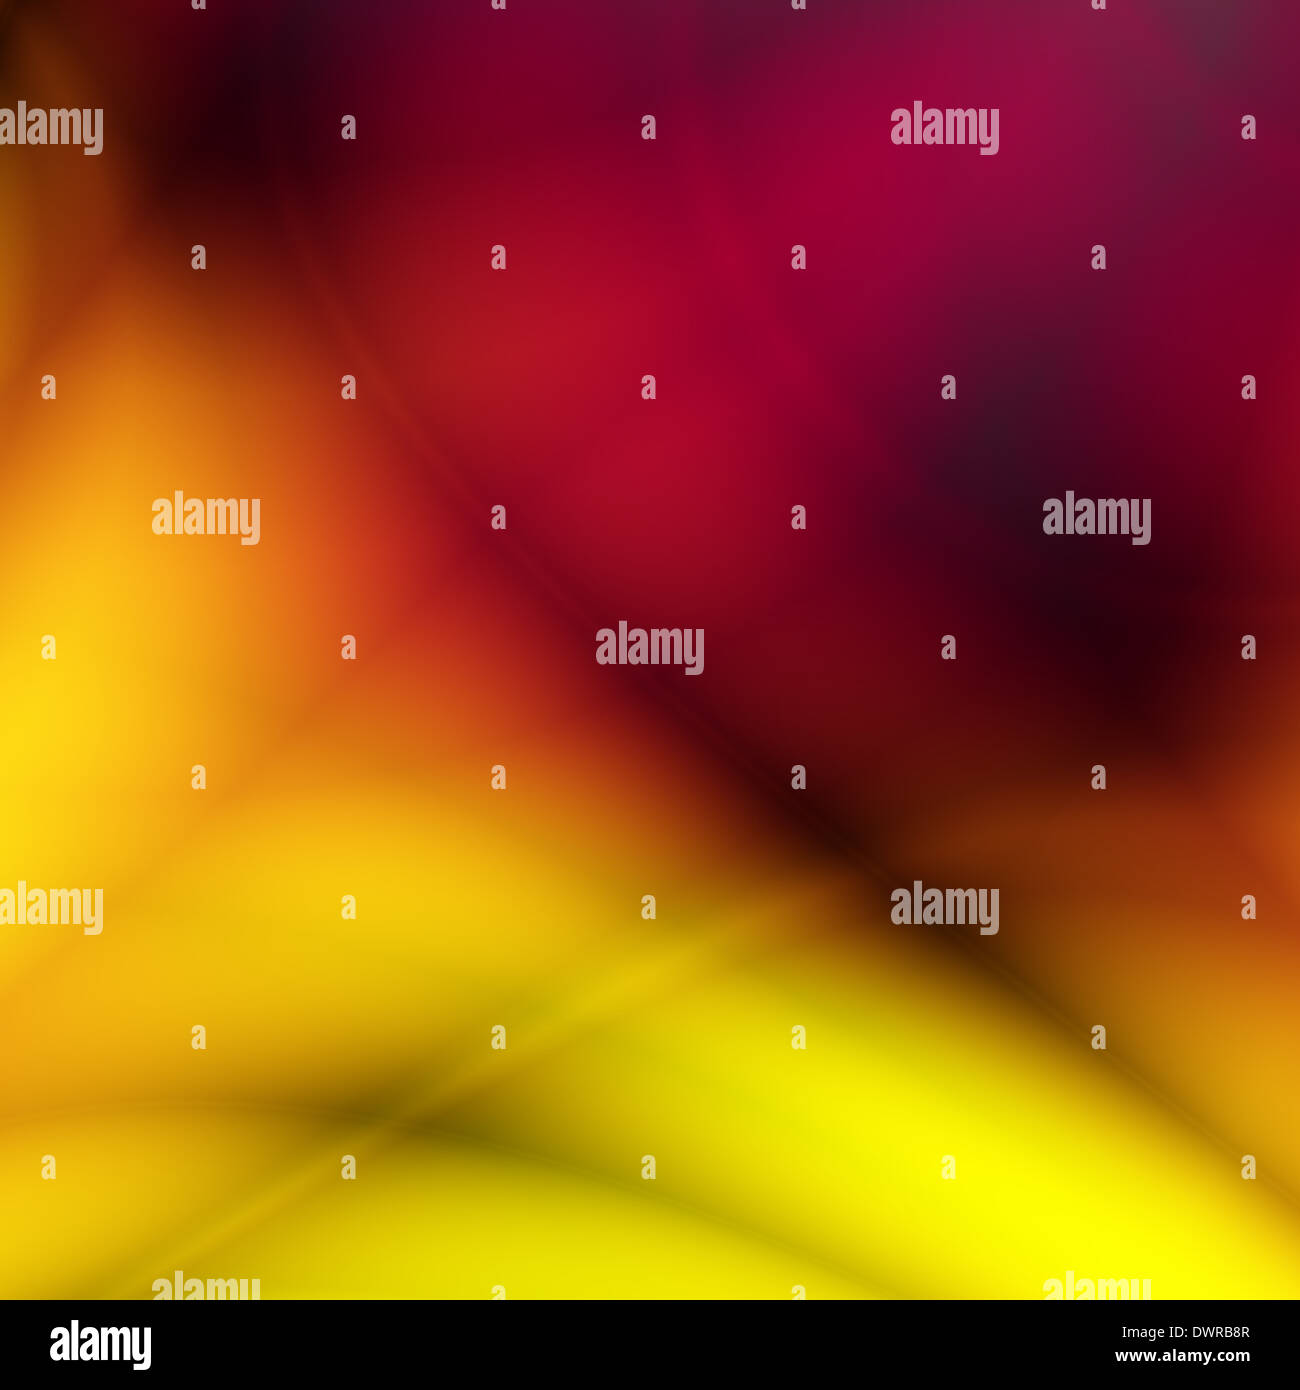 Colorful Fun Abstract Spring Phone Wallpaper Stock Photo